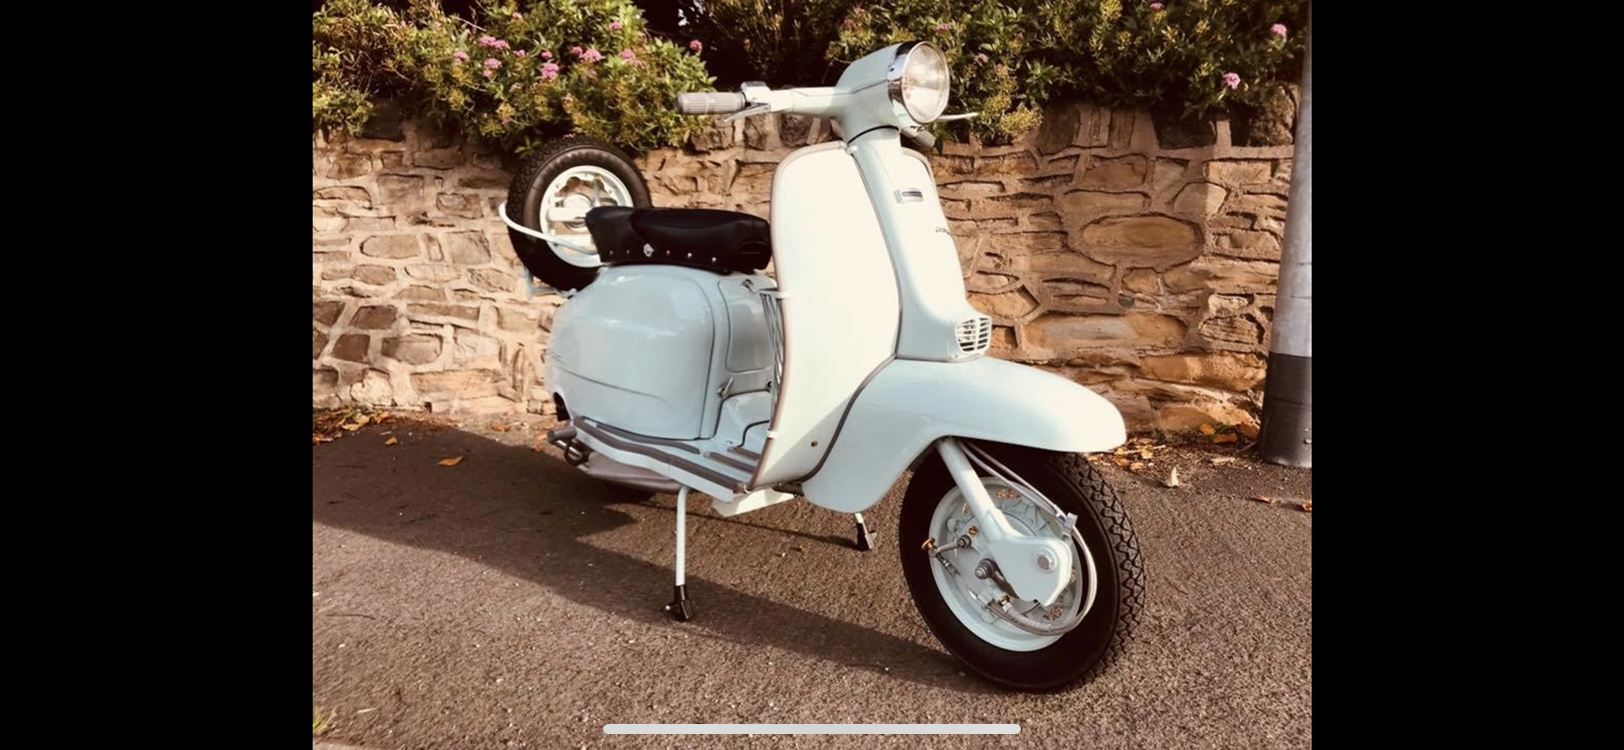 1960 Lambretta Vespa scomadi lml scooters  For Sale (picture 1 of 6)